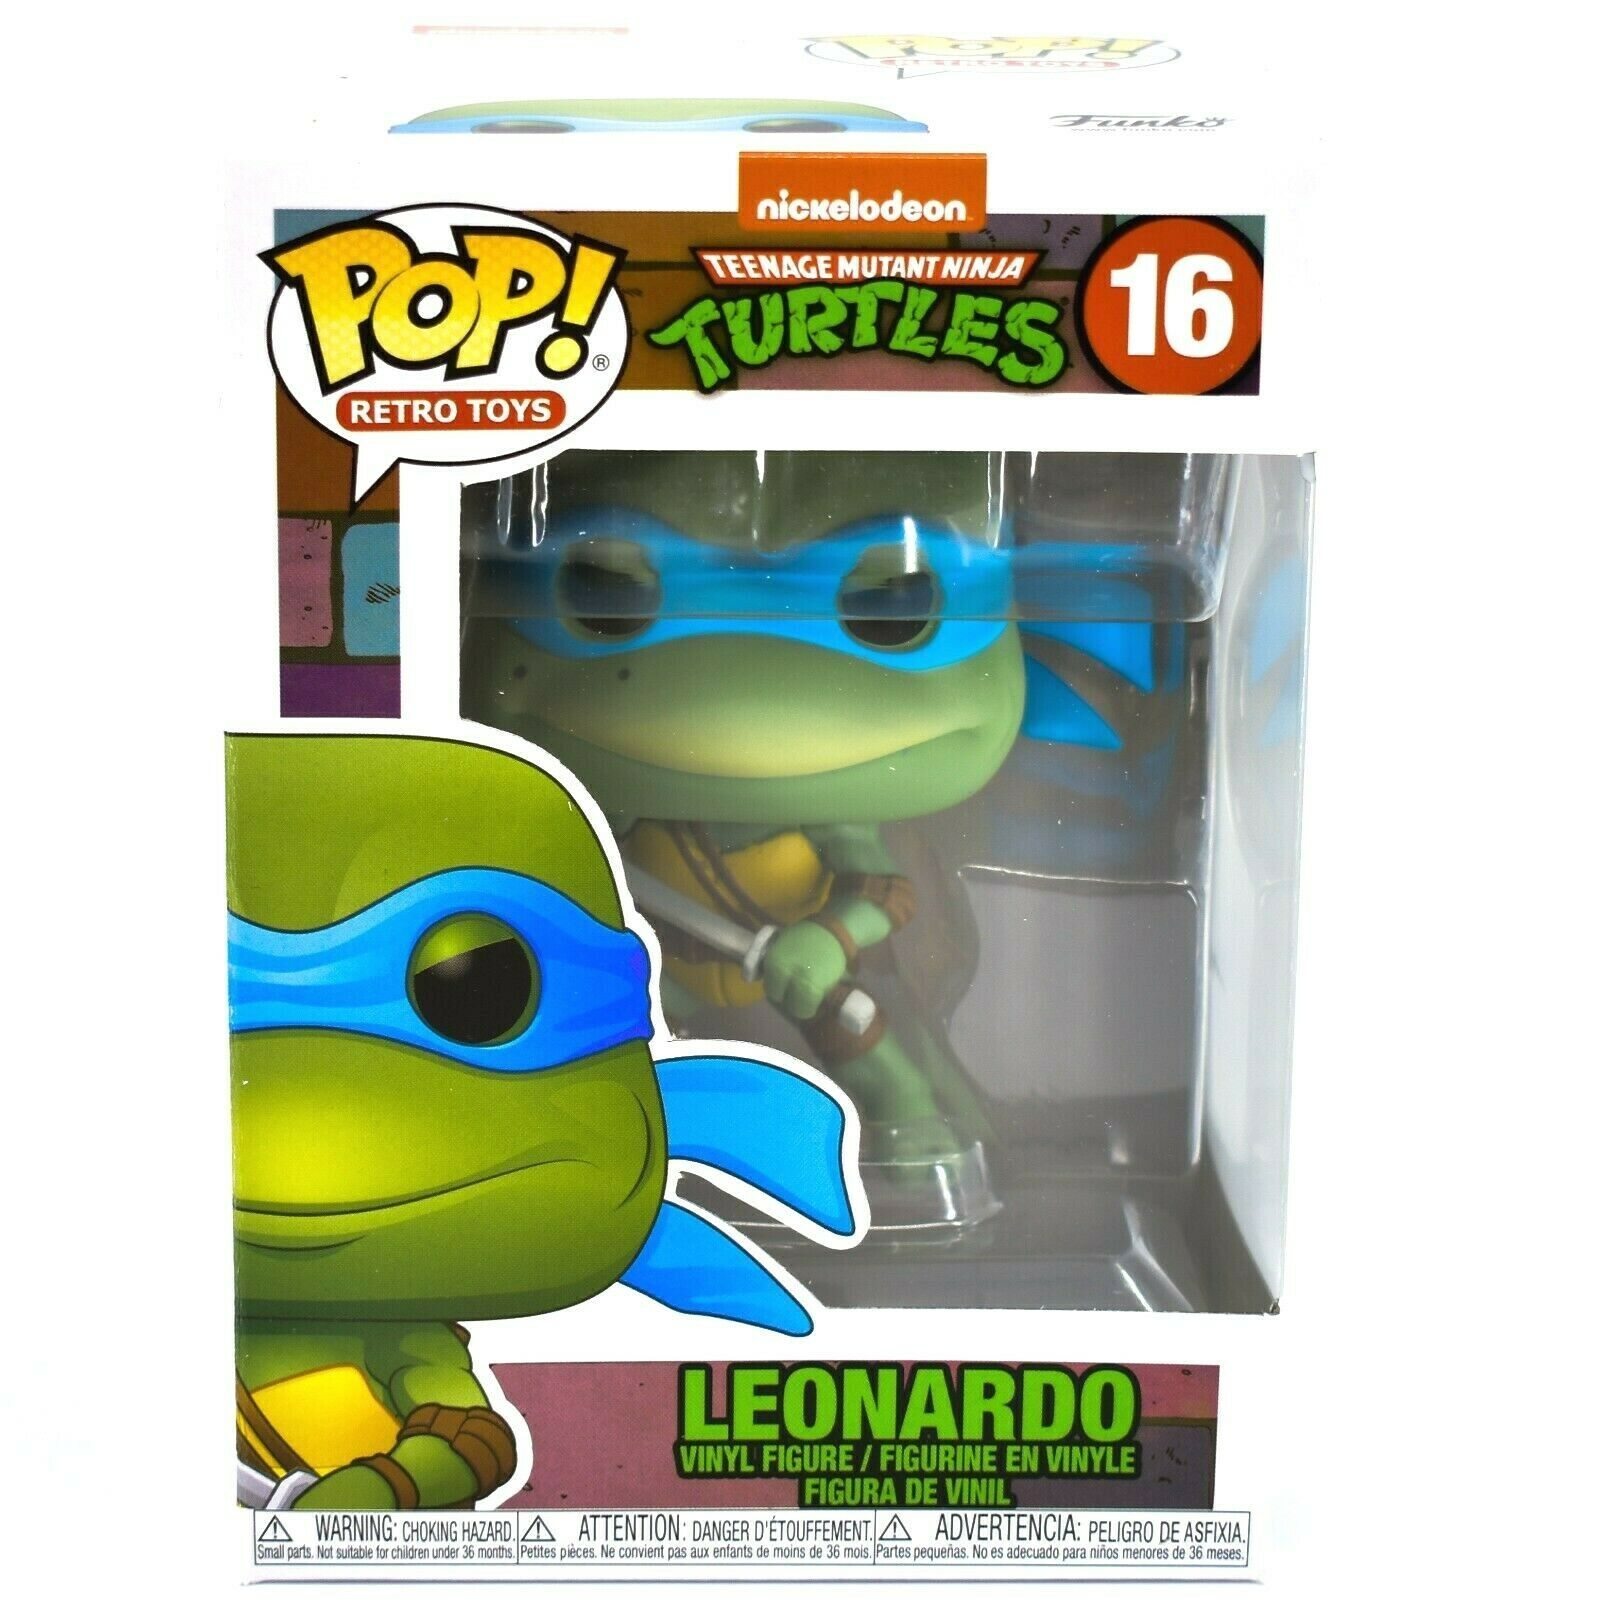 POP! Retro Toys: Teenage Mutant Ninja Turtles - Leonardo Vinyl Figure #16